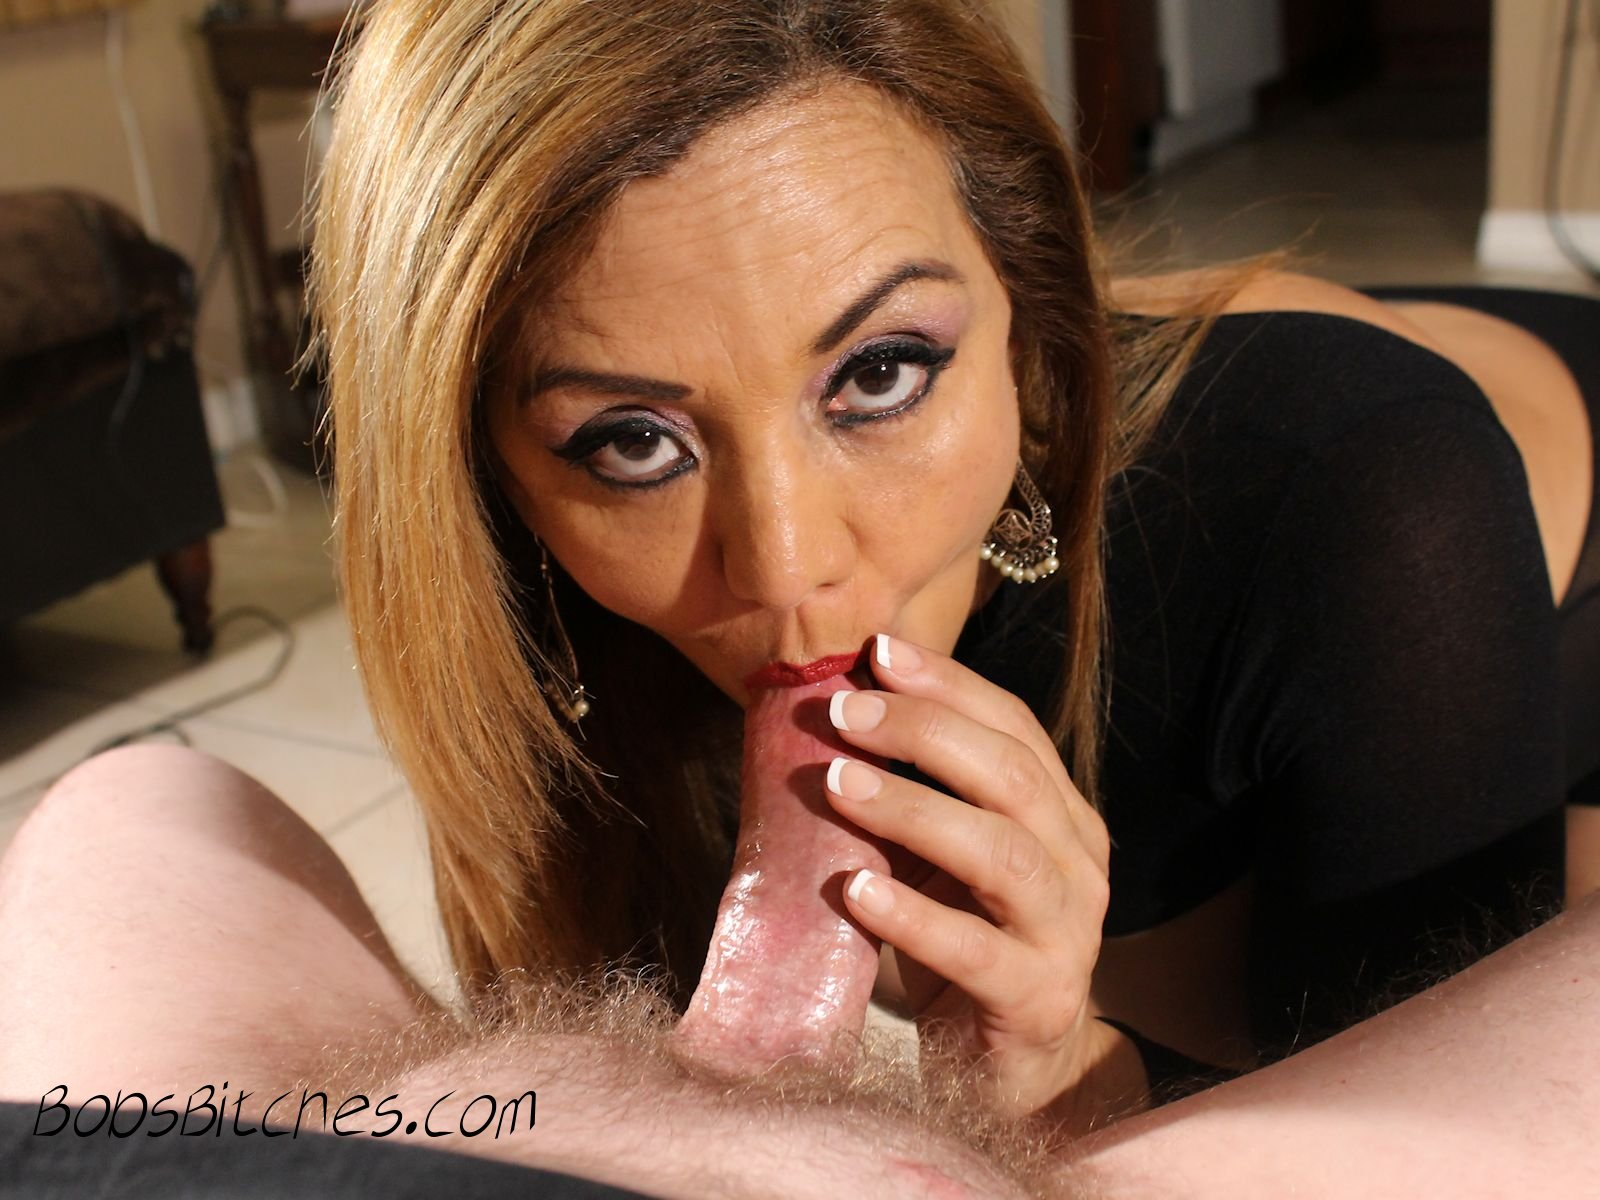 Latina milf, deep throats  cock.